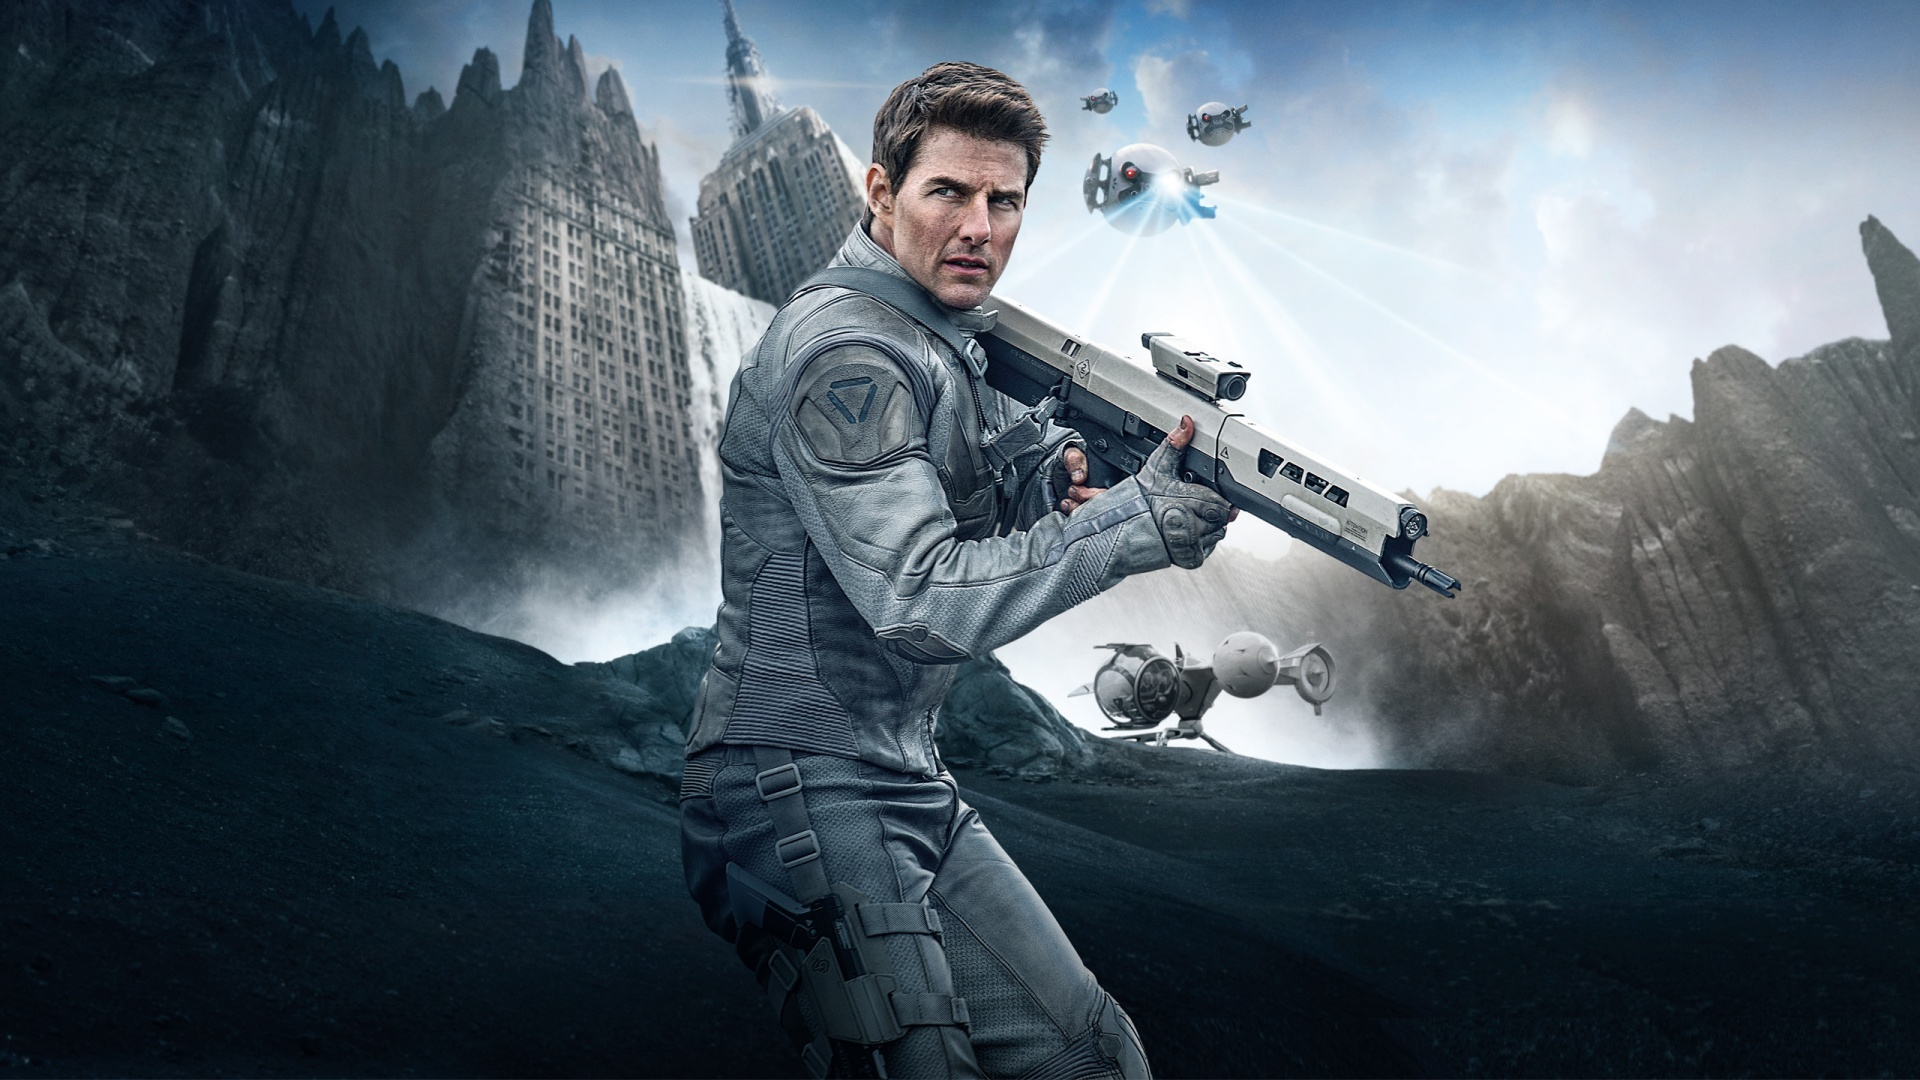 tom cruise in oblivion wallpapers in jpg format for free download